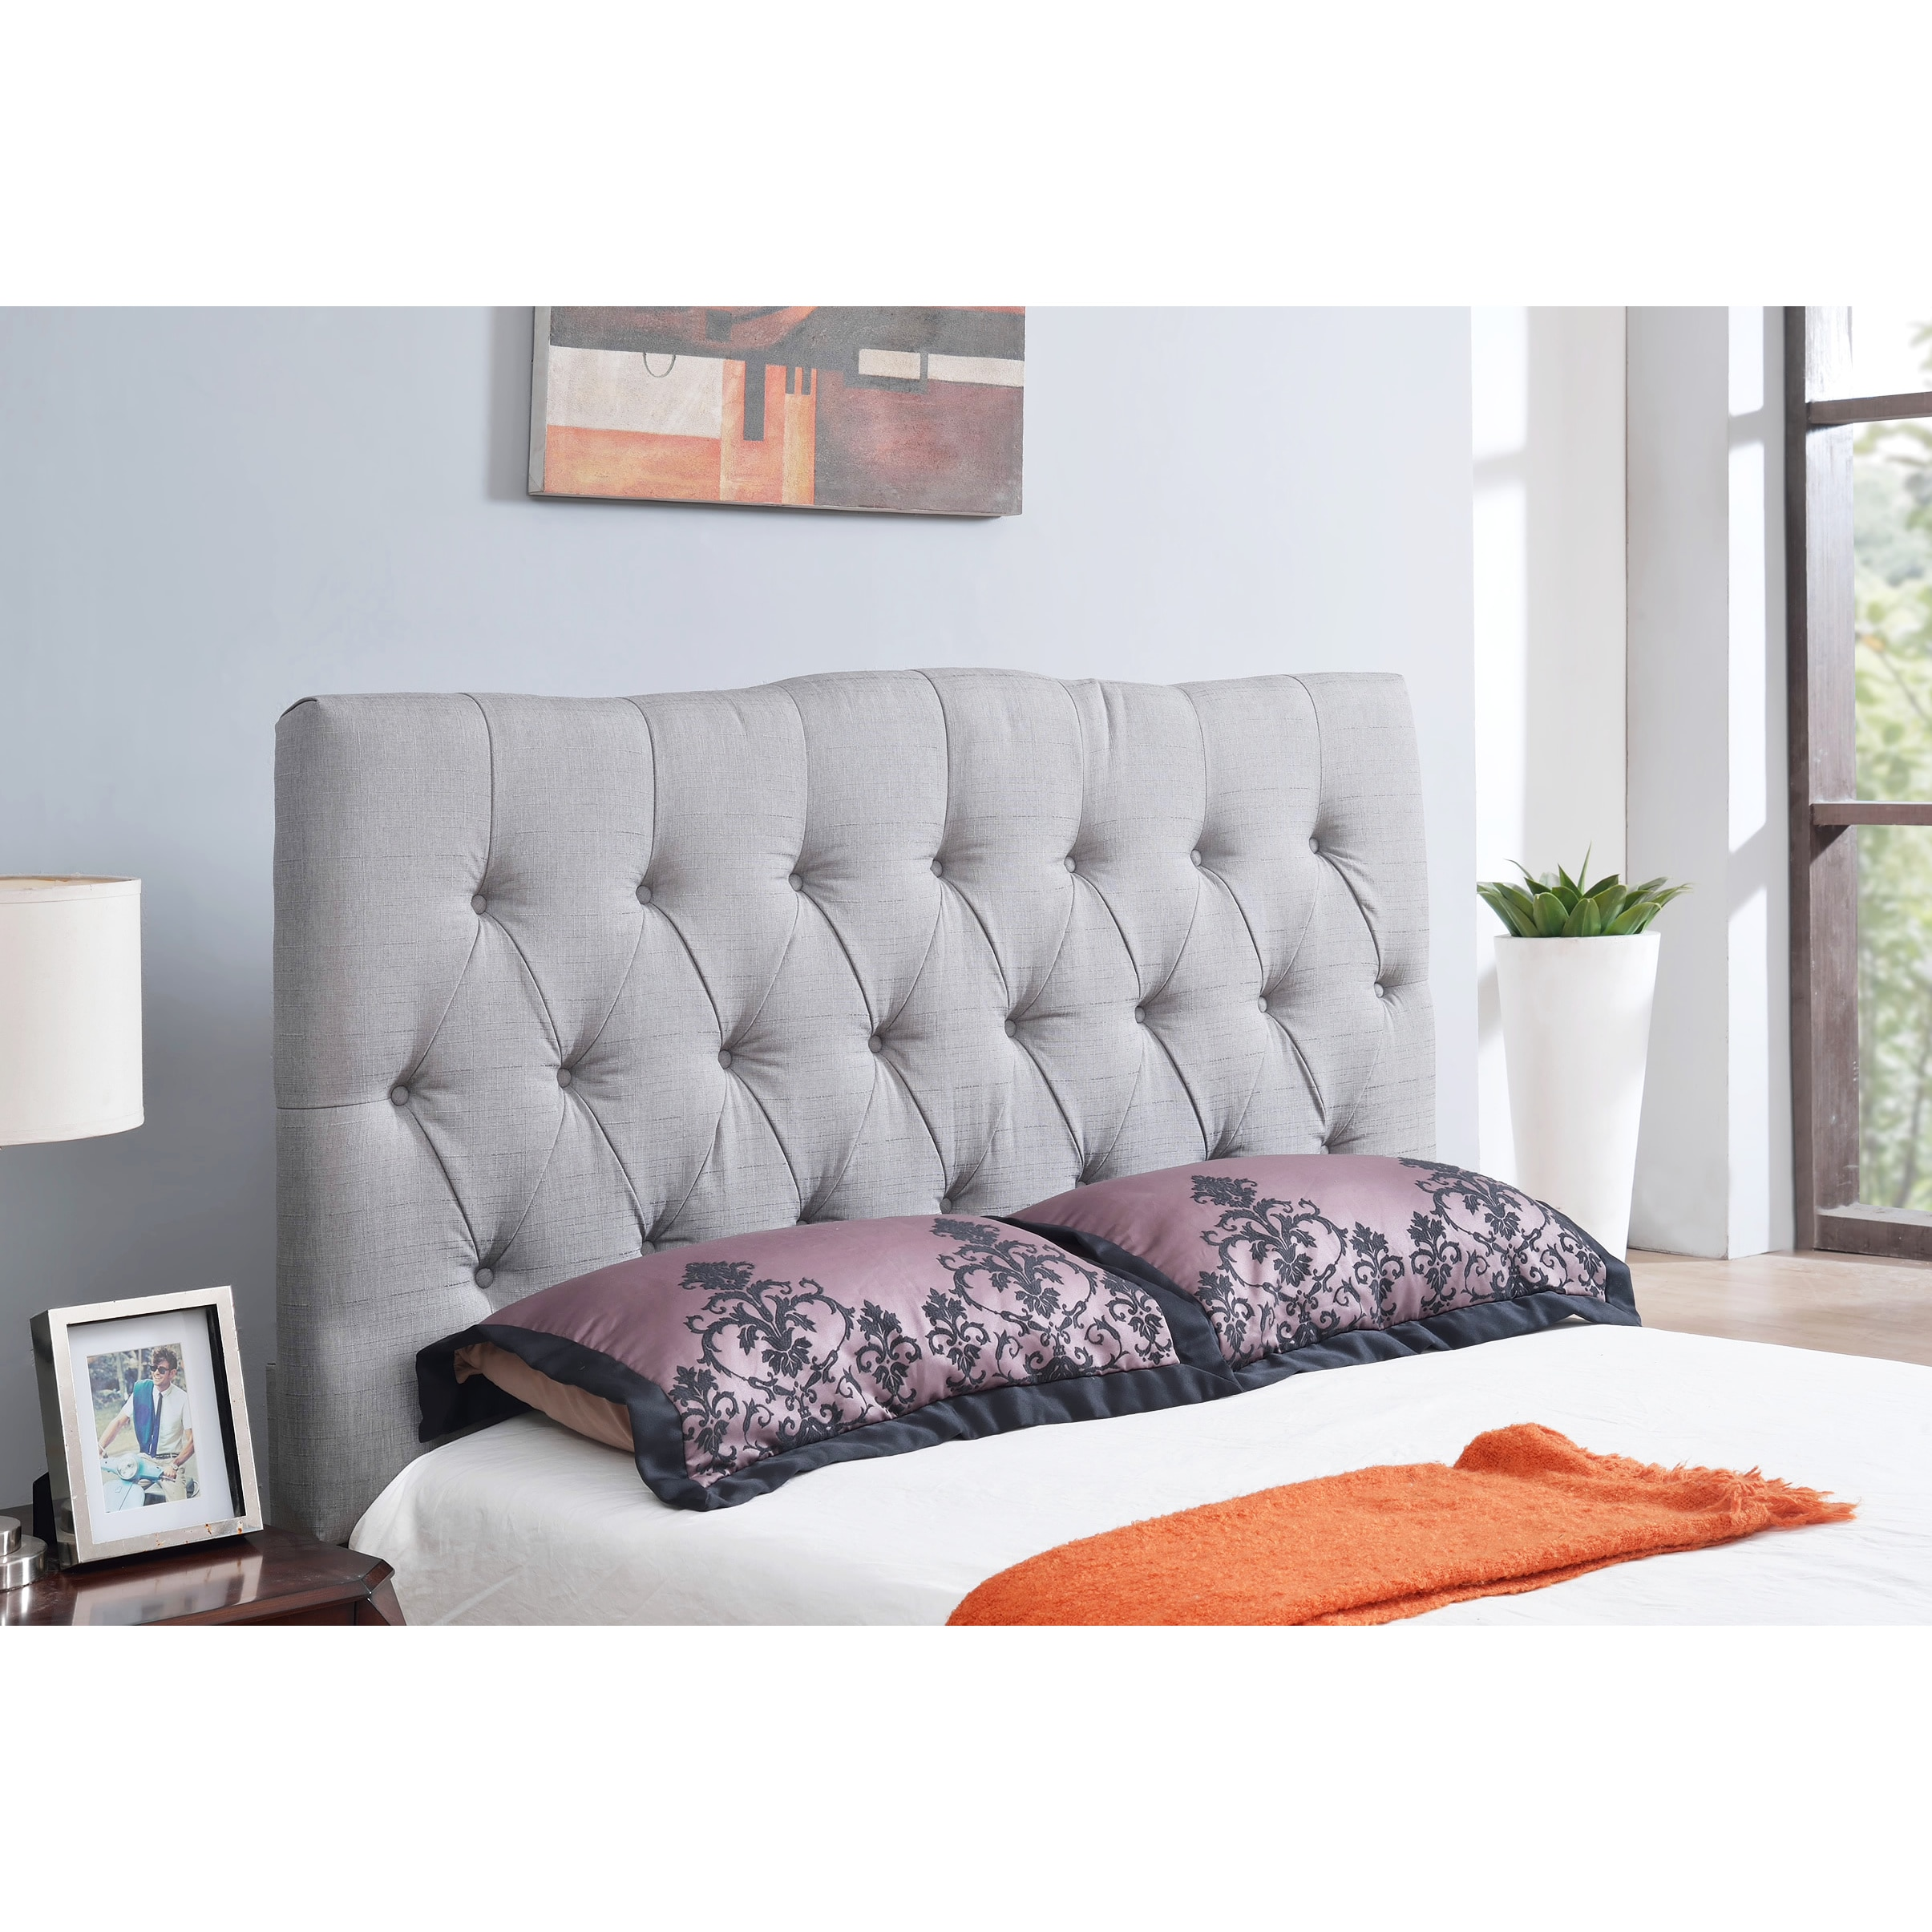 nightstands dazzling tufted size master grey platform in furniture design as uphostered headboard open with modern traditional bed decorate queen ideas shade and lamps table bedroom